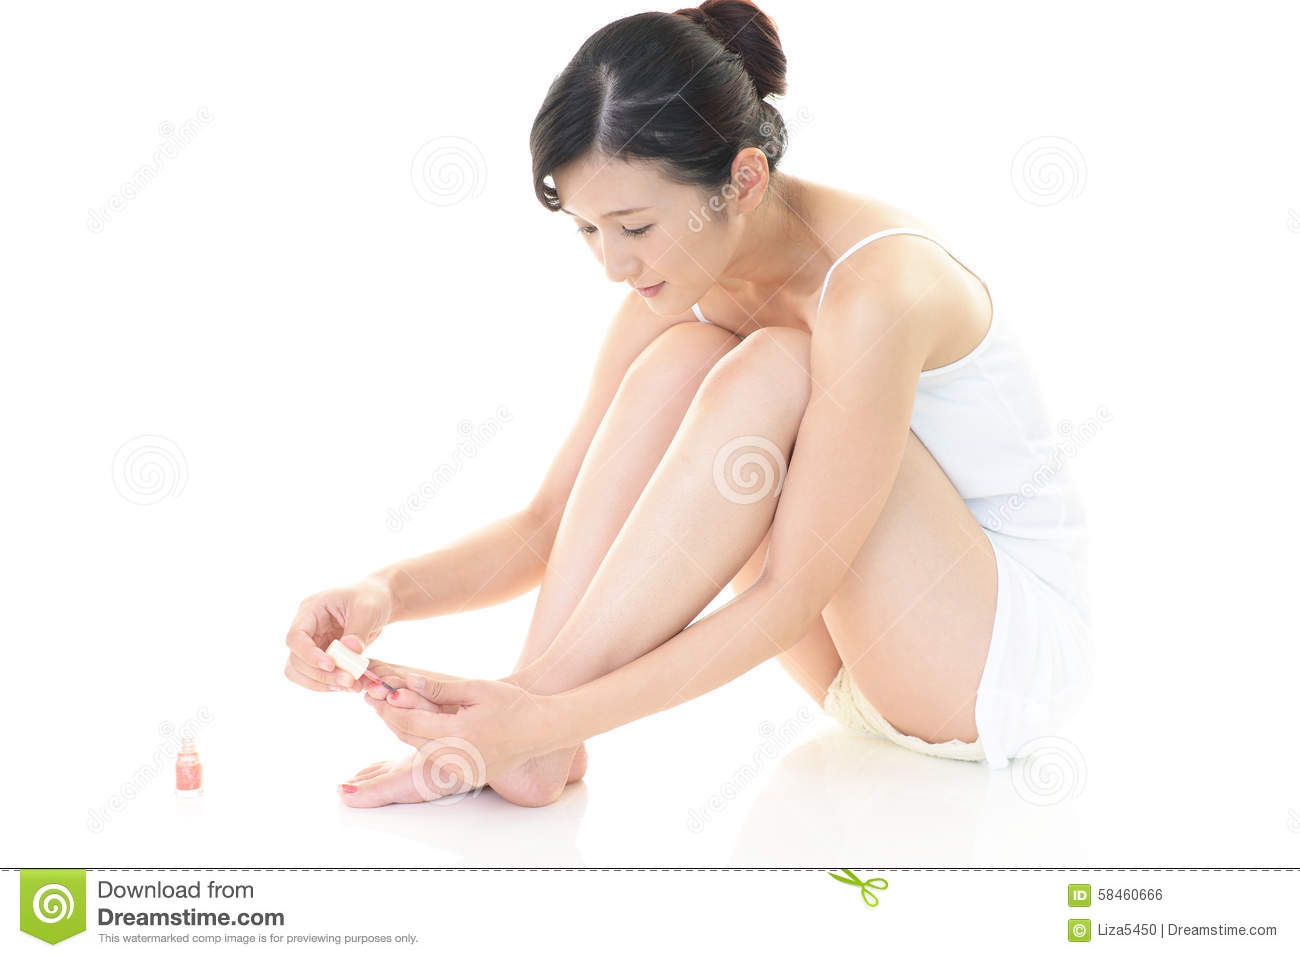 How To Paint Your Toes At Home